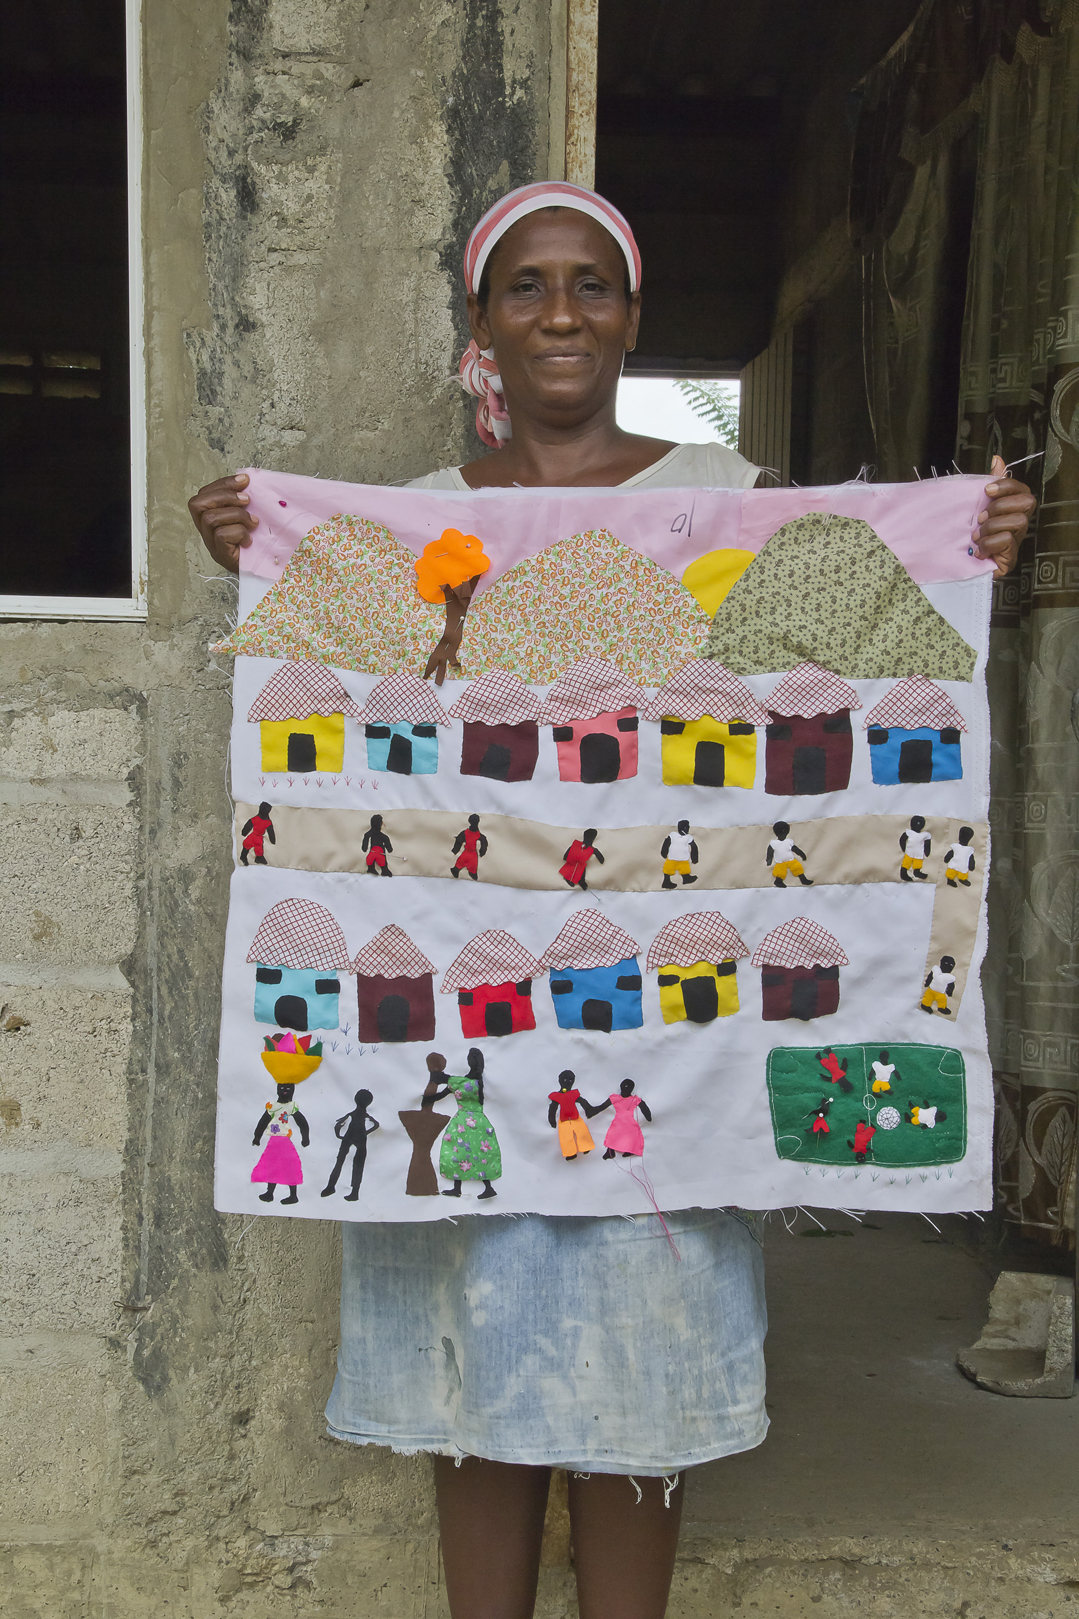 Here a woman is showing her woven fabric artwork representing the idea of community integration, her love for the sports and her attachment to cultural traditions